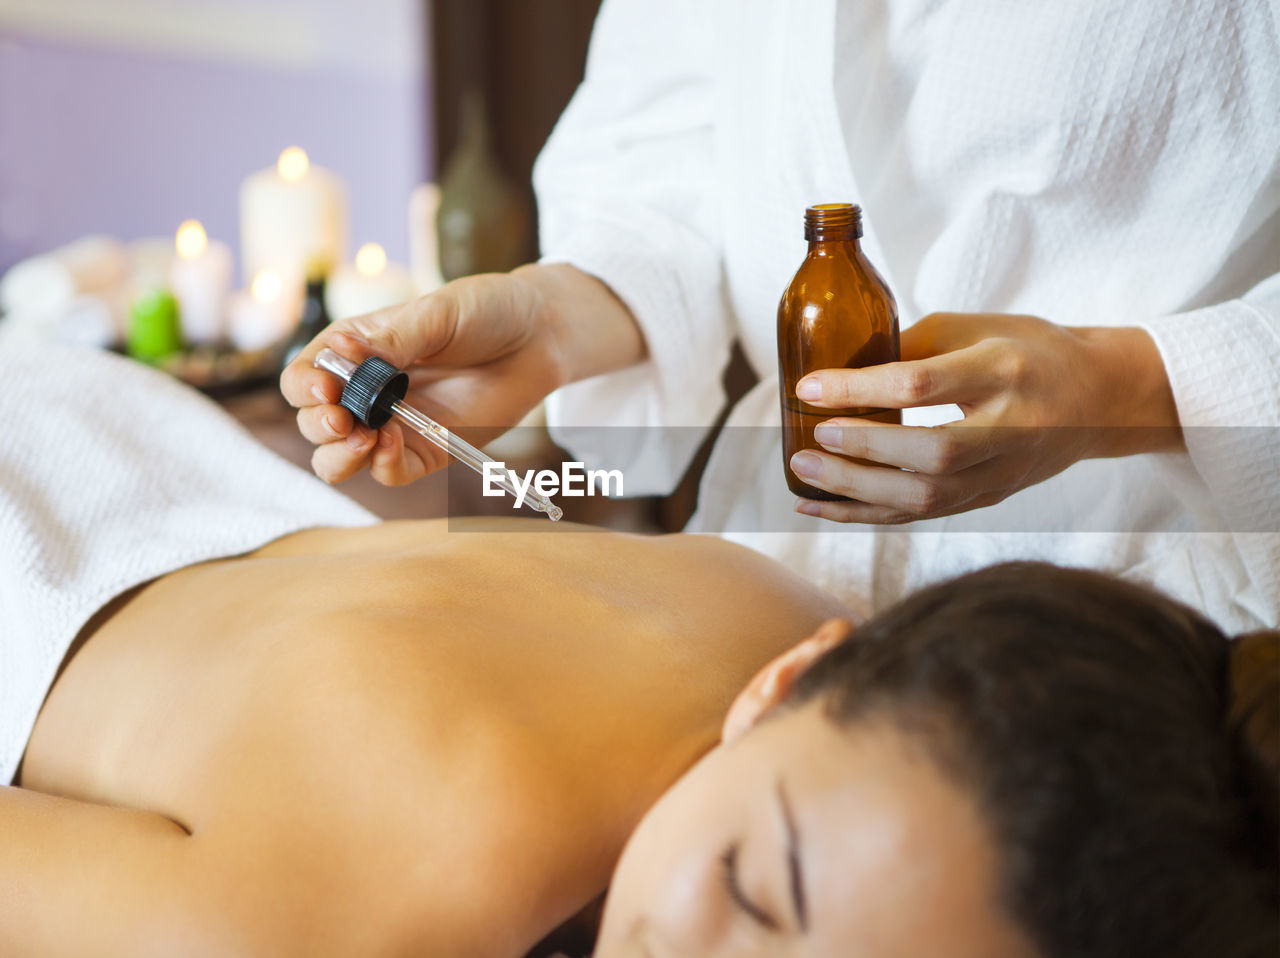 Midsection of woman holding oil bottle at spa